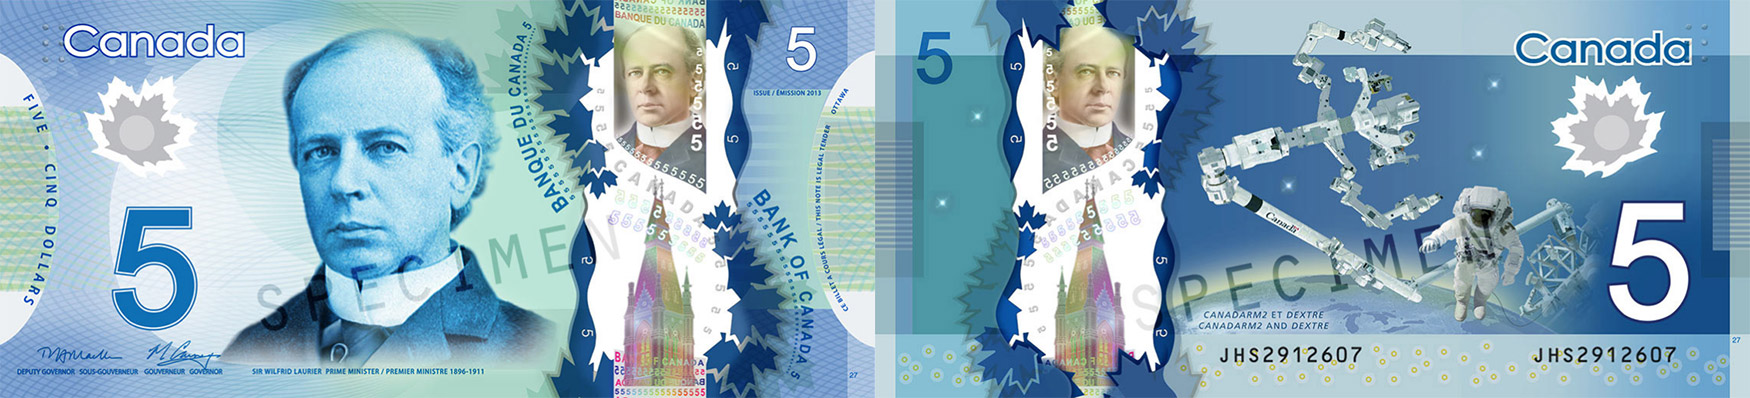 5 dollars 2011 to 2016 - Canada Banknote